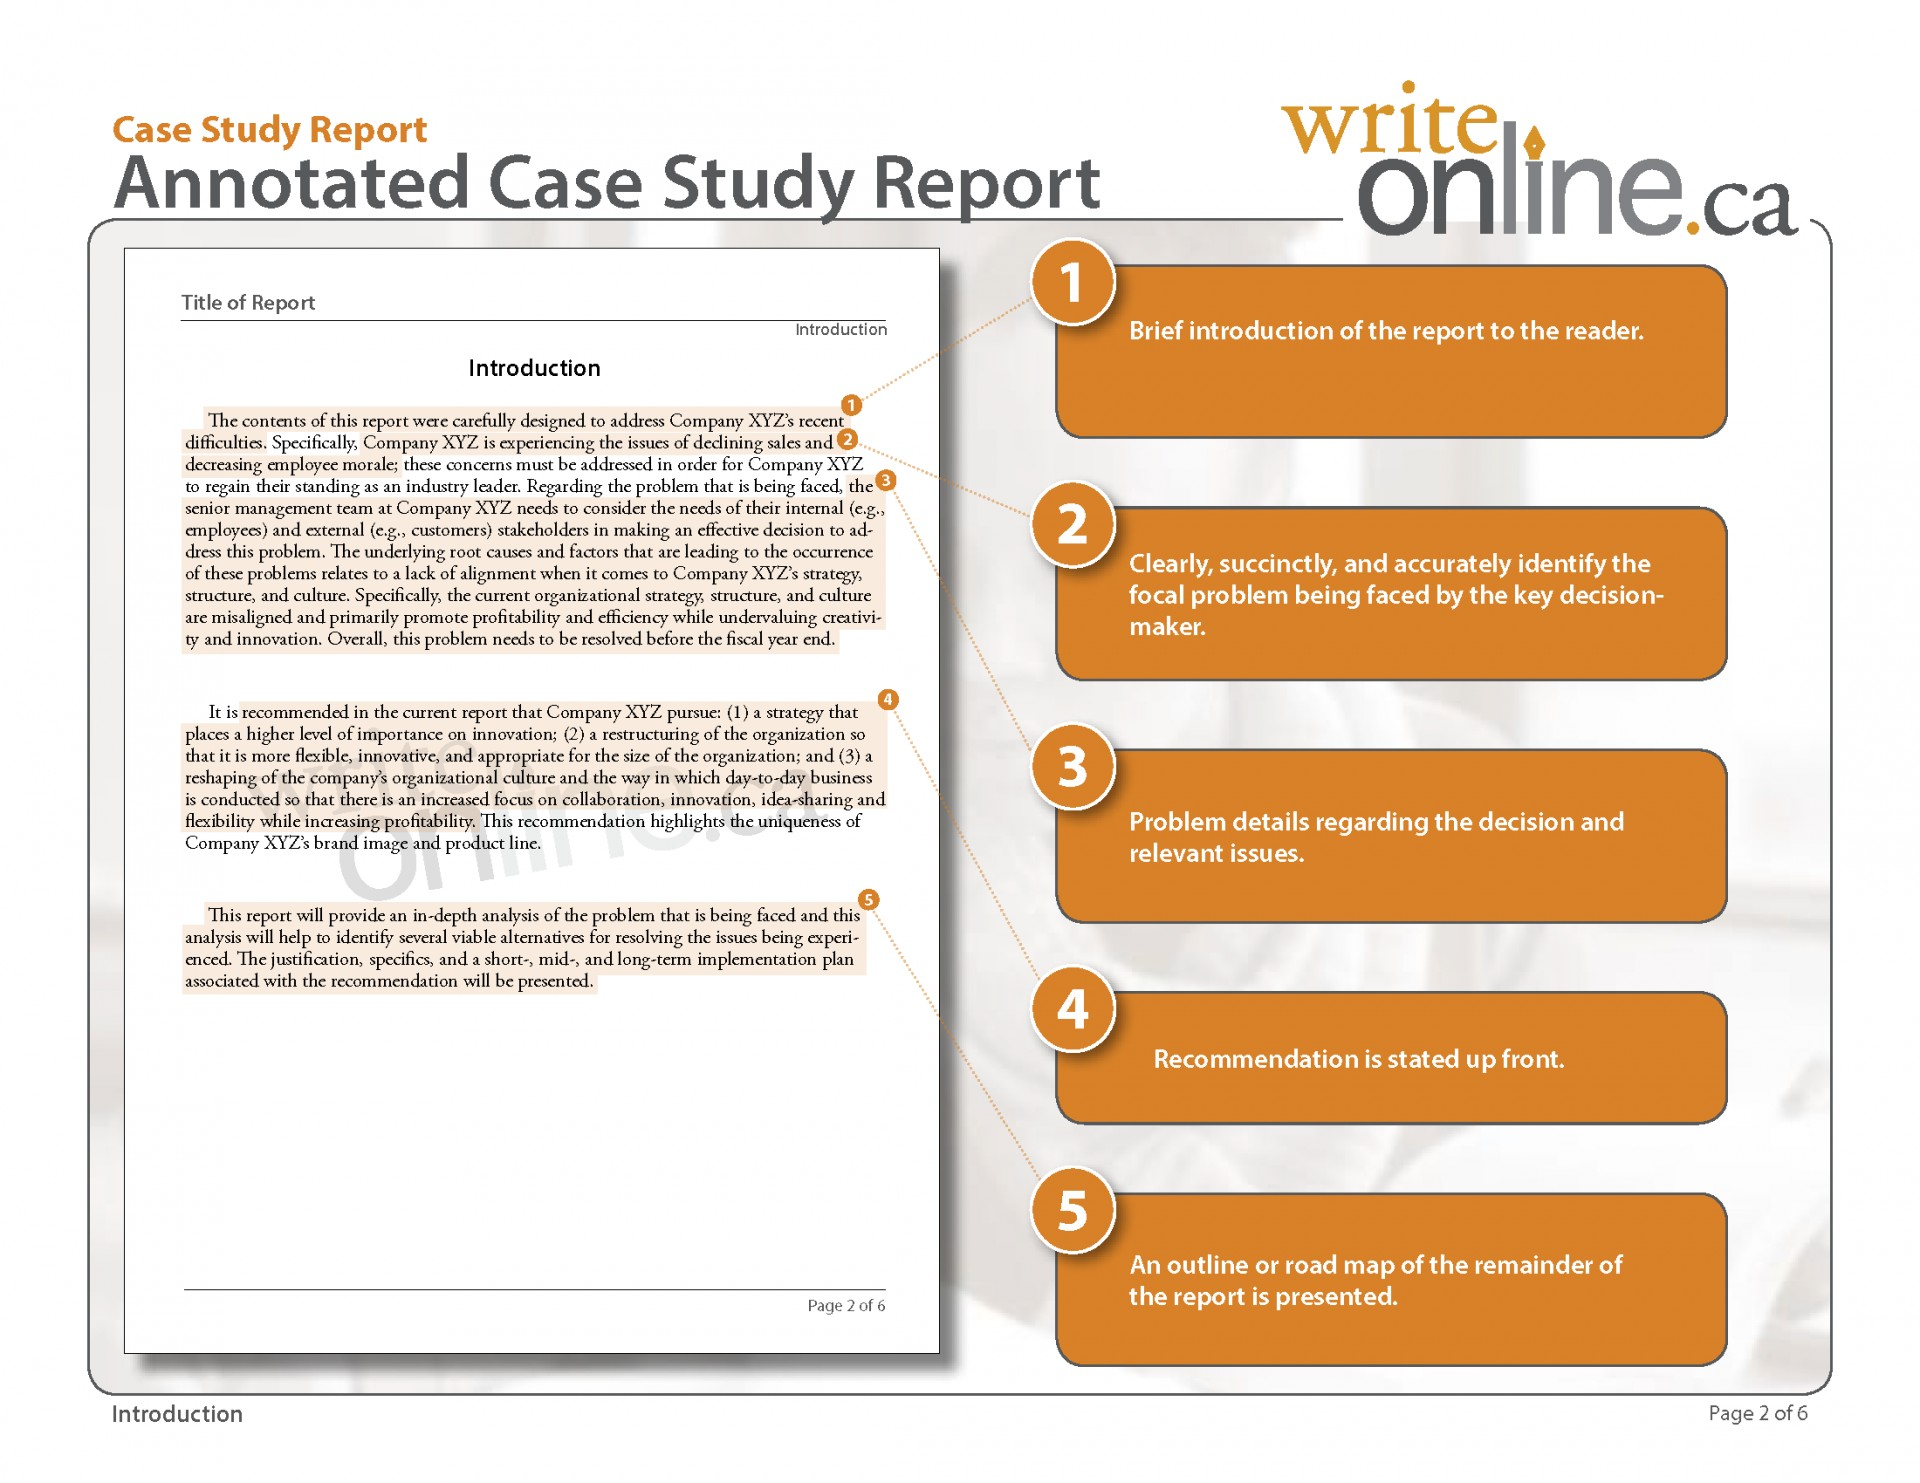 008 Casestudy Annotatedfull Page 2 Parts Of Research Paper Wonderful A Introduction 1920